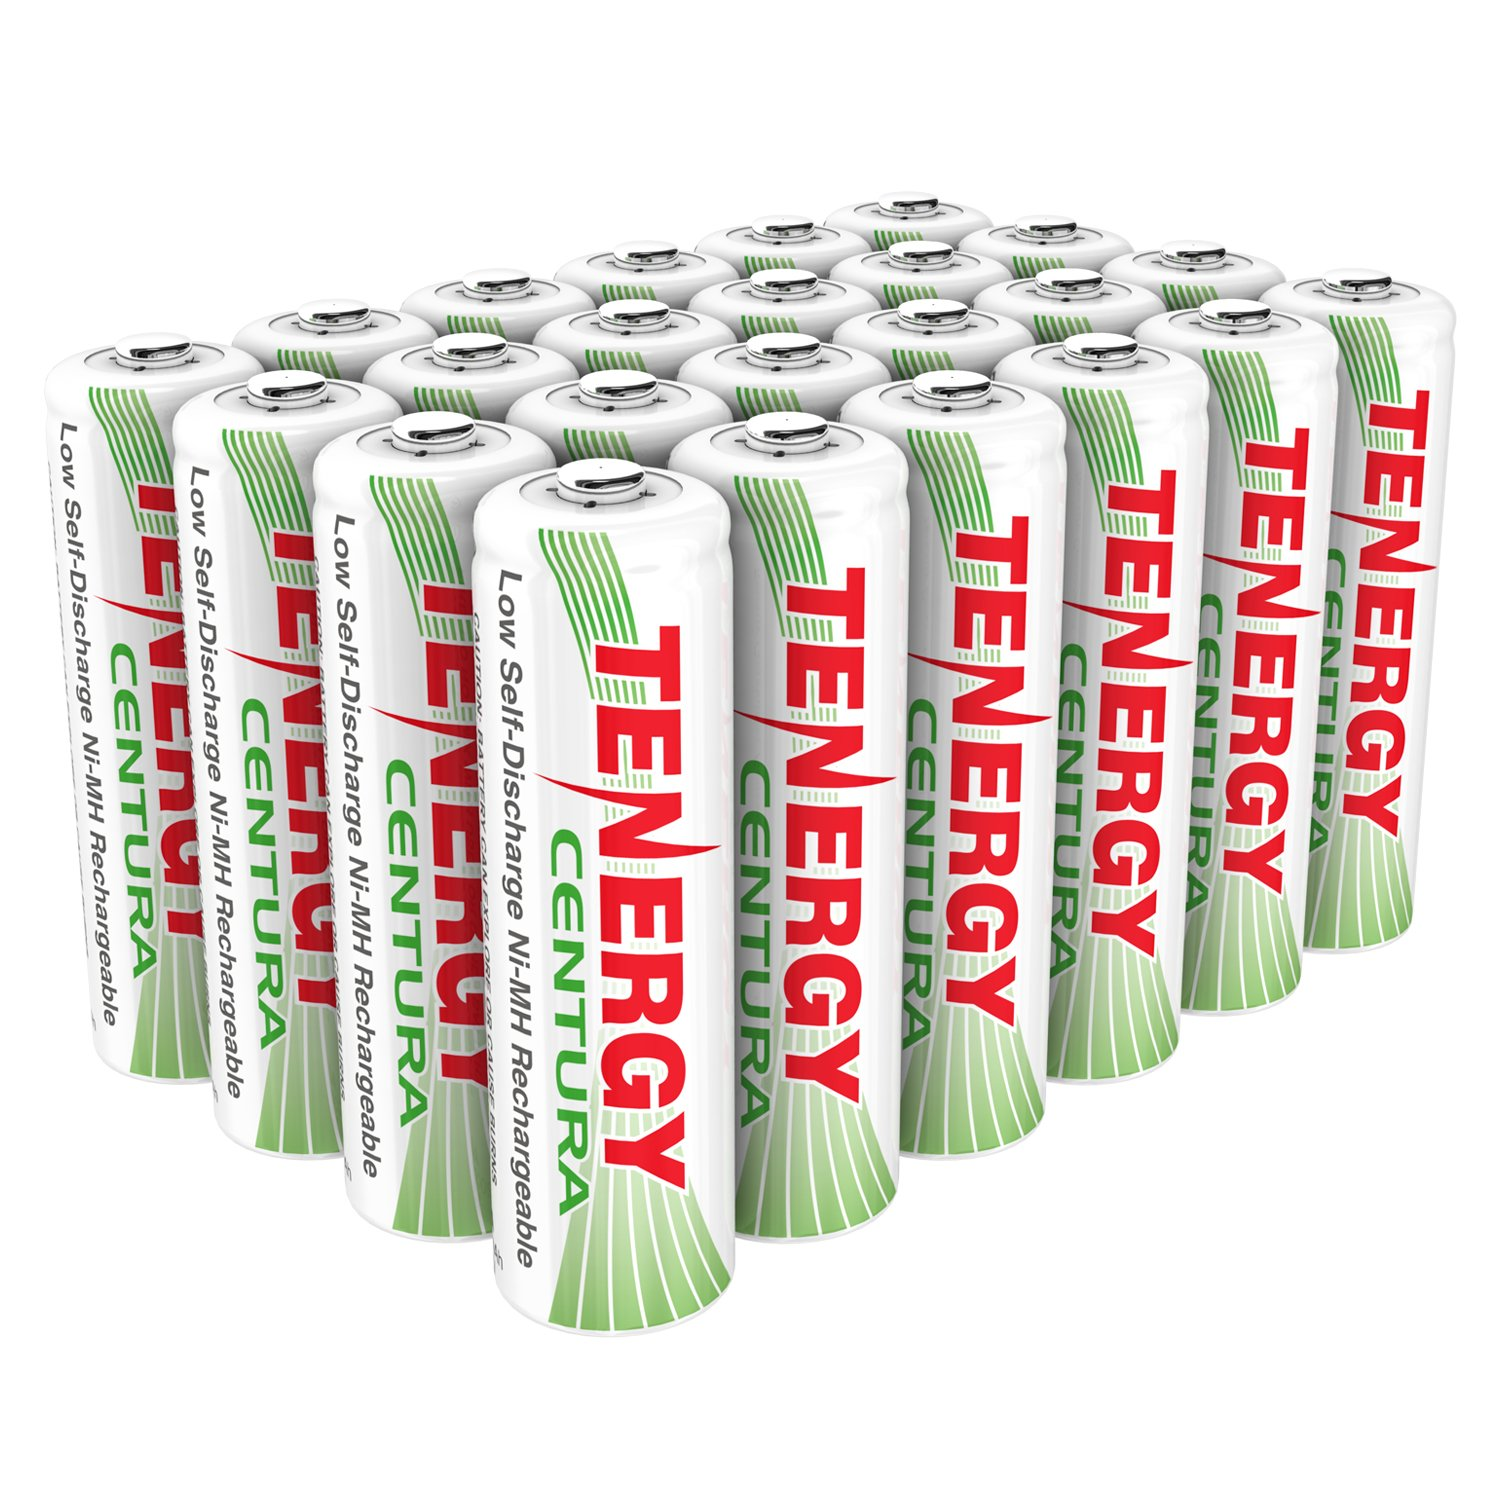 Tenergy Centura AA NiMH Rechargeable Battery, 2000mAh Low Self Discharge Batteries, Pre-Charged AA Batteries, 24 Pack by Tenergy